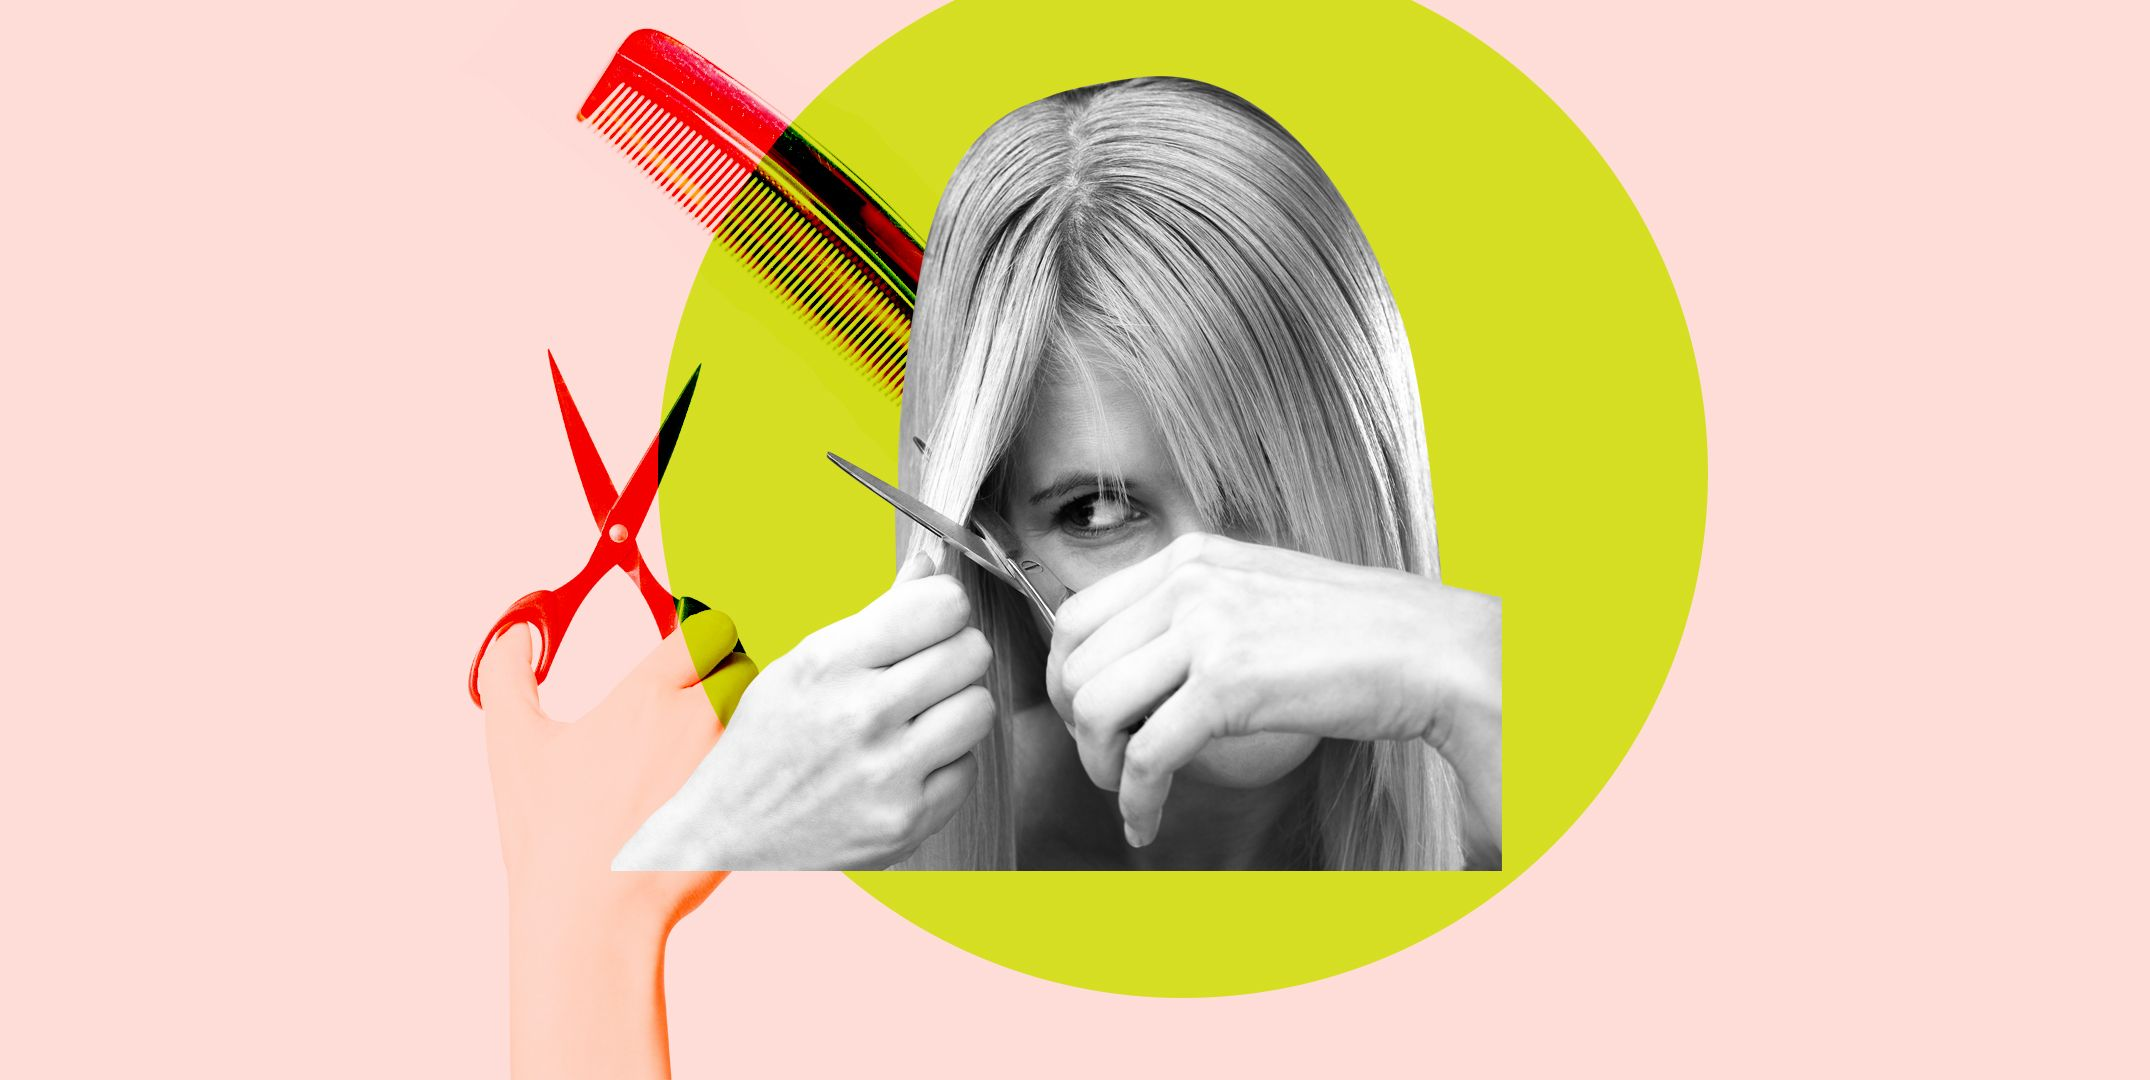 How to Cut Your Own Hair at Home Without Totally Effing It Up